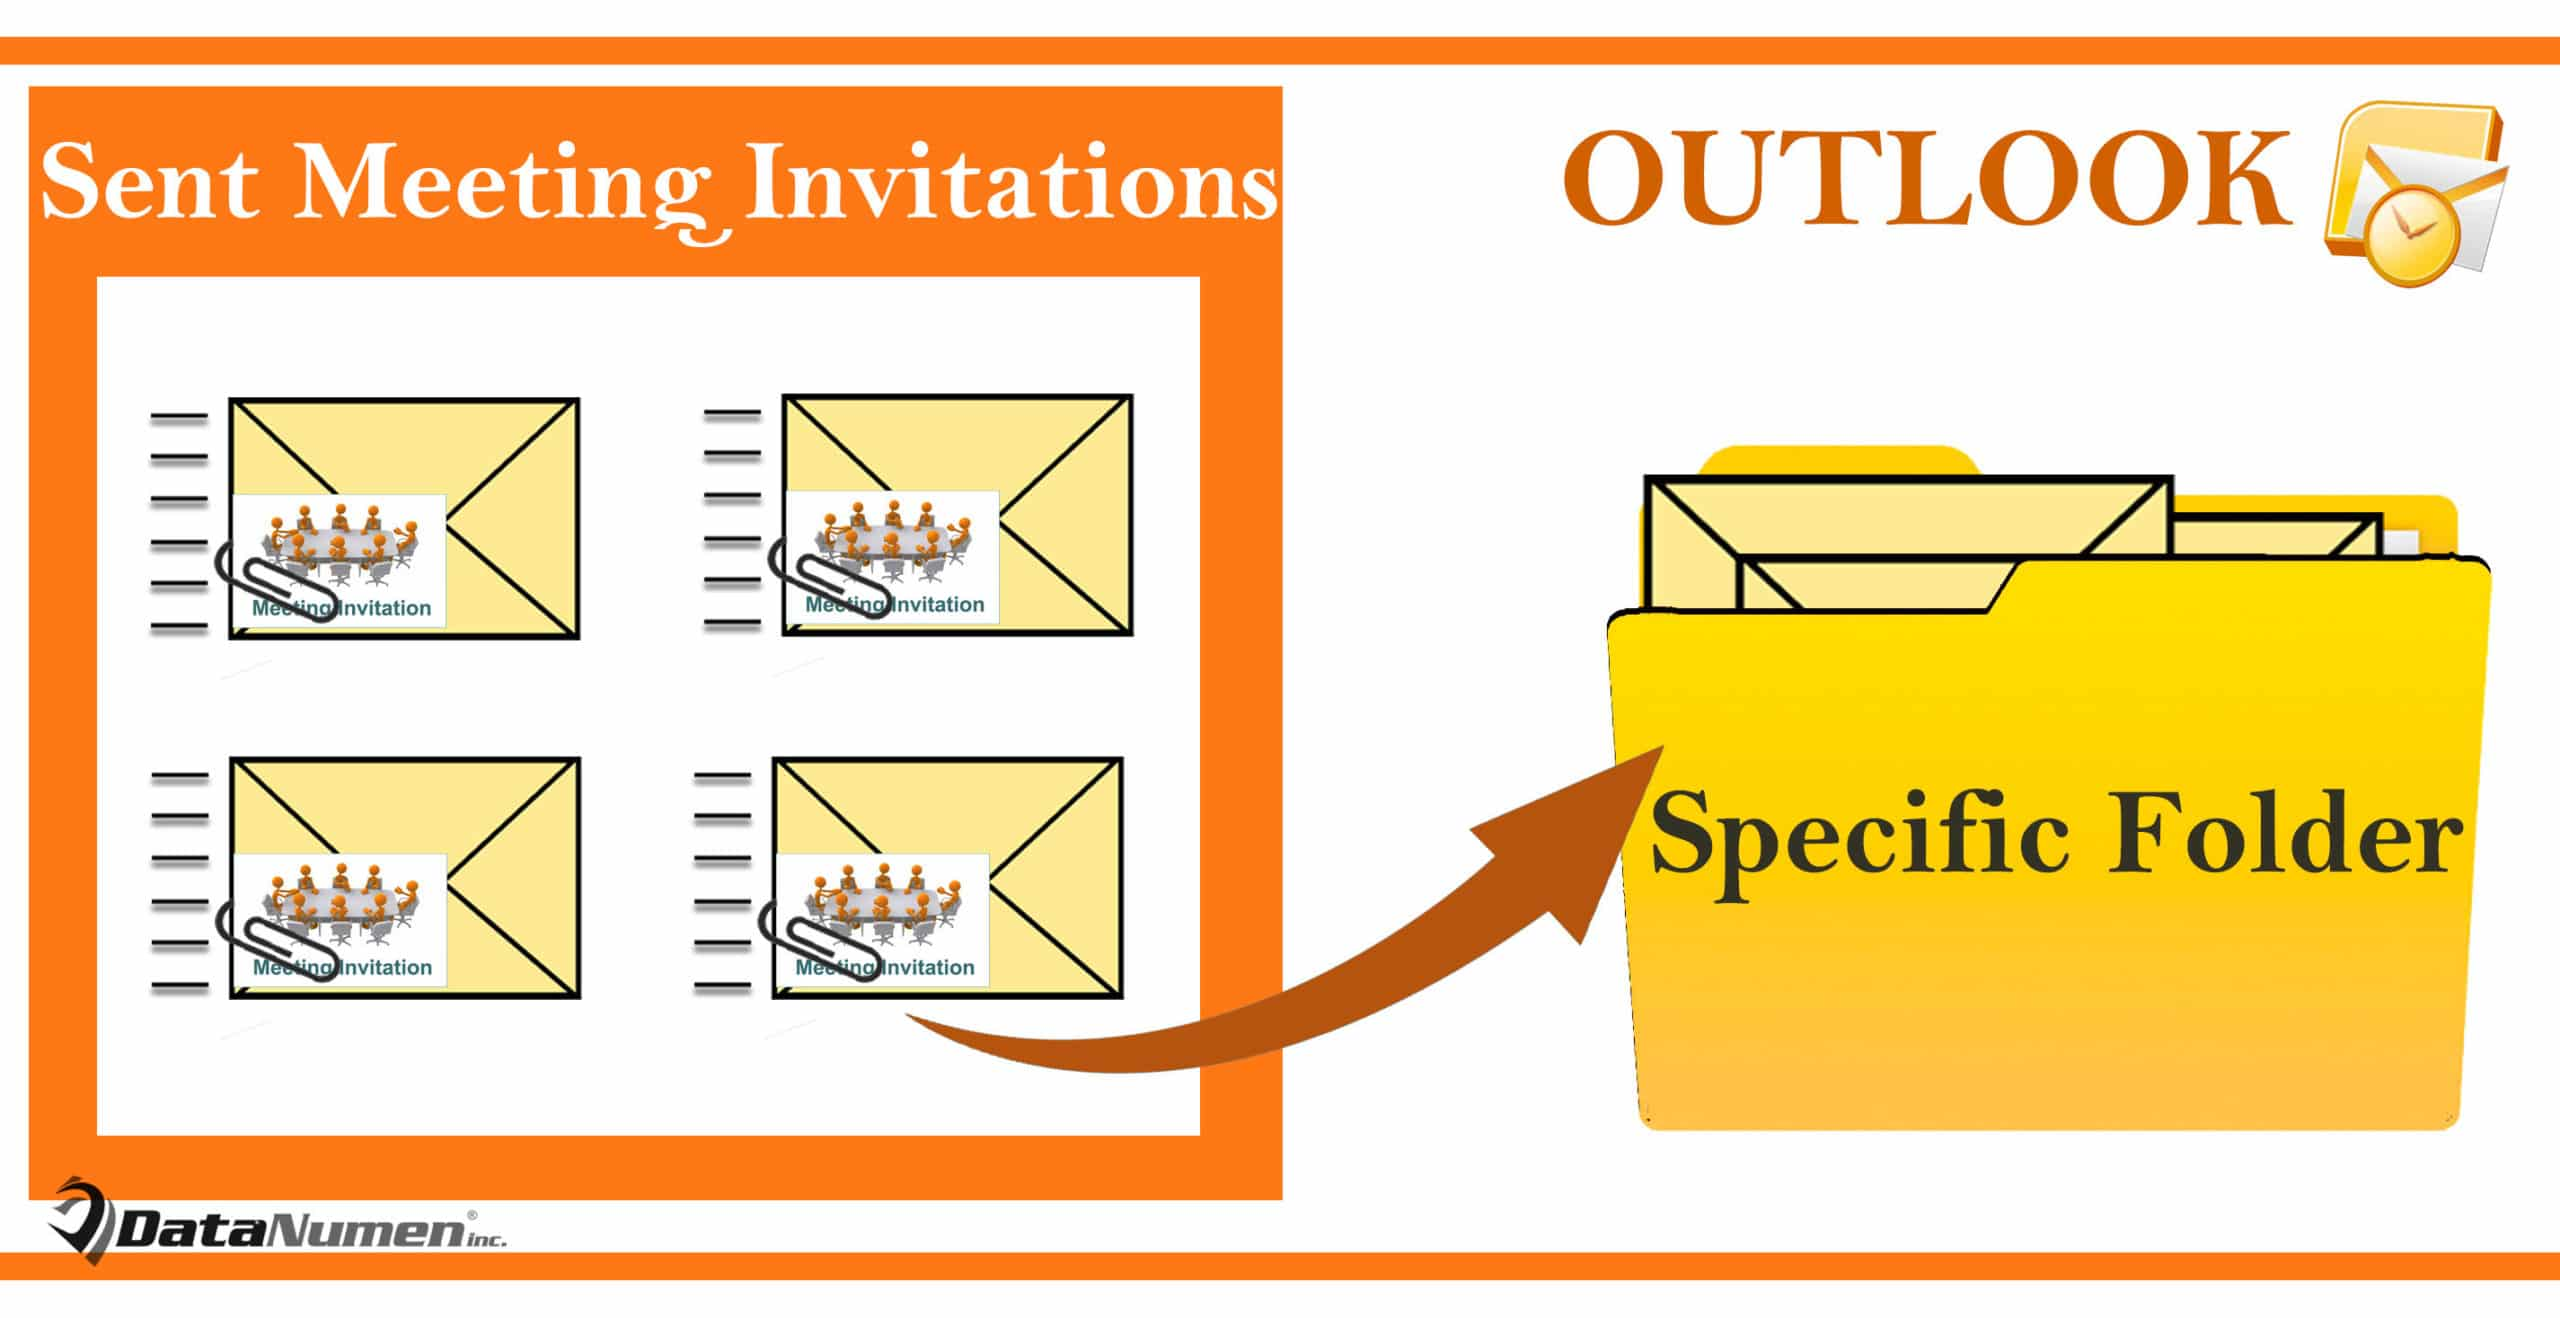 Auto Move Sent Meeting Invitations to a Specific Folder in Your Outlook